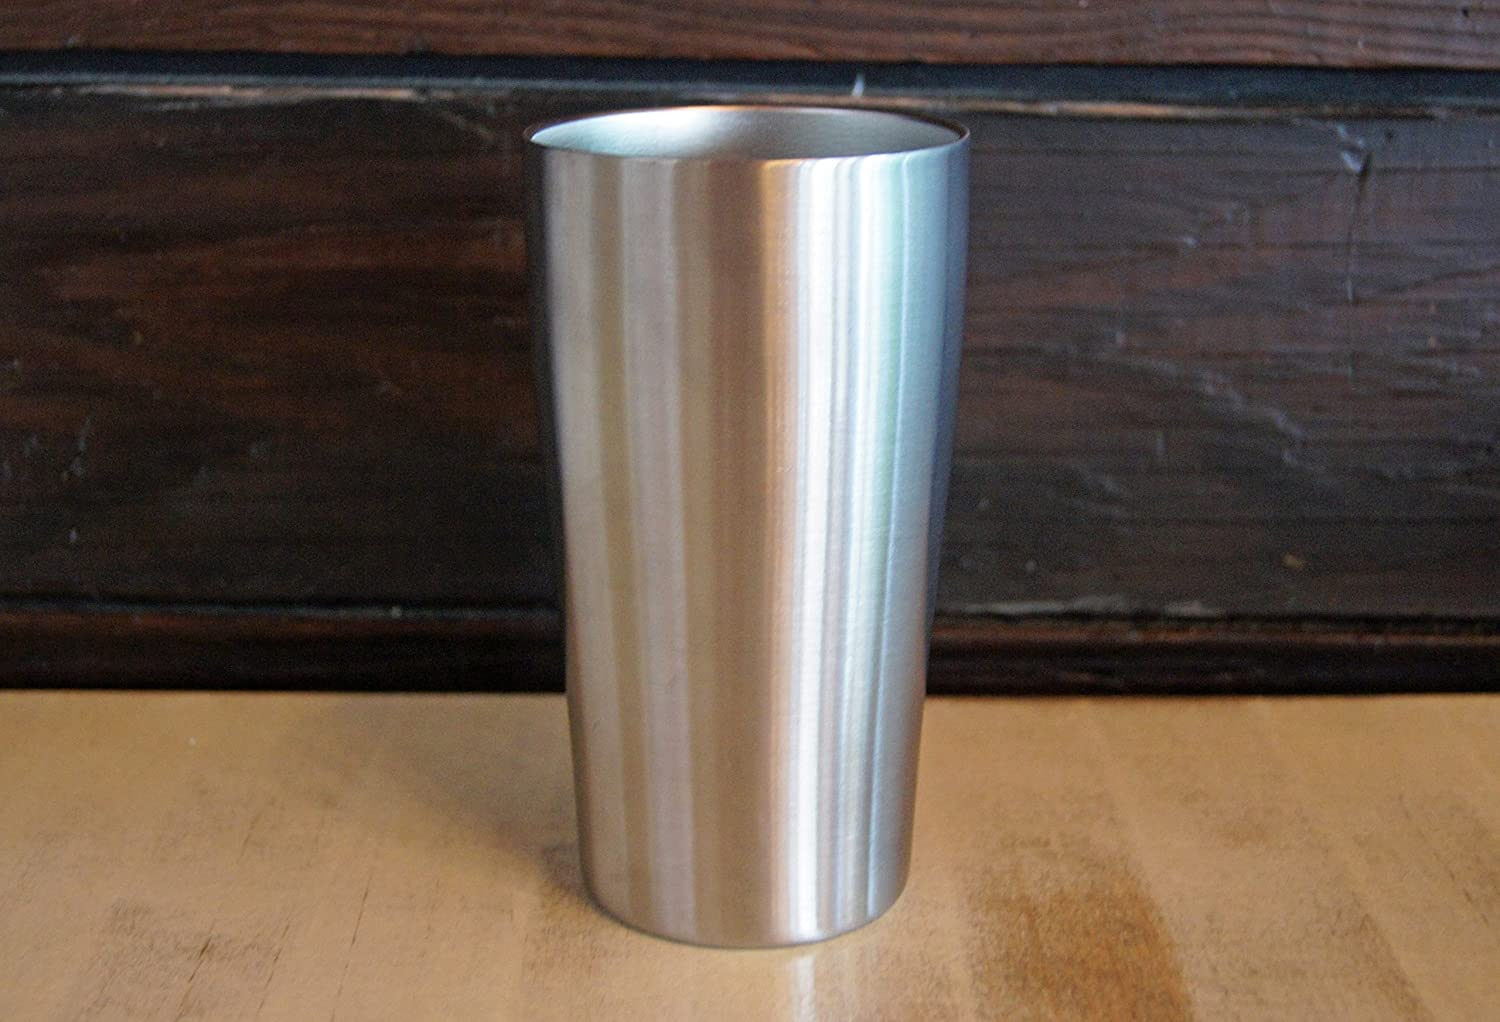 set of 2 Stainless Vacuum Insulated Beer Tumbler 16oz Pub Pint Glass by Lancaster Steel